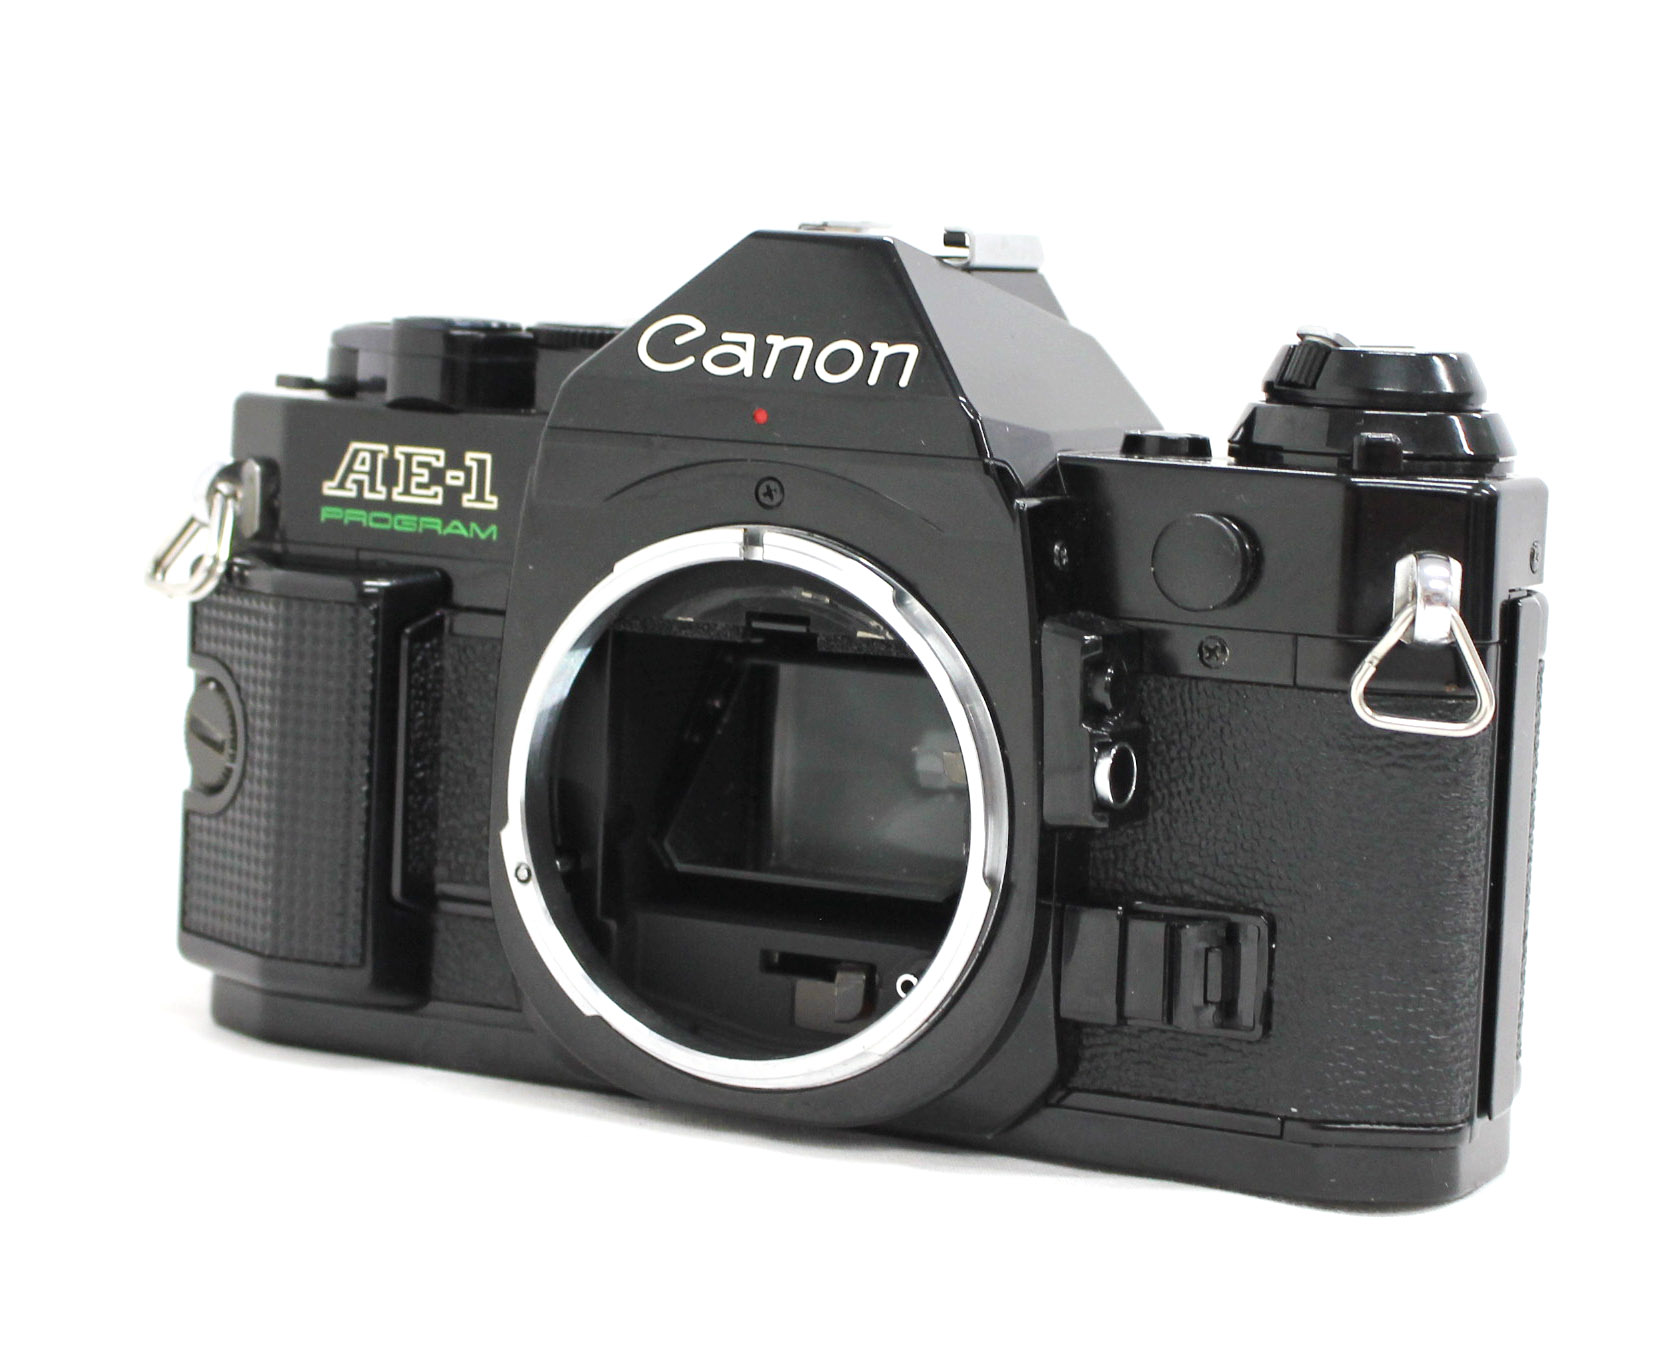 Canon AE-1 Program 35mm SLR Film Camera Black with New FD 35mm F/2.8 Lens from Japan Photo 1